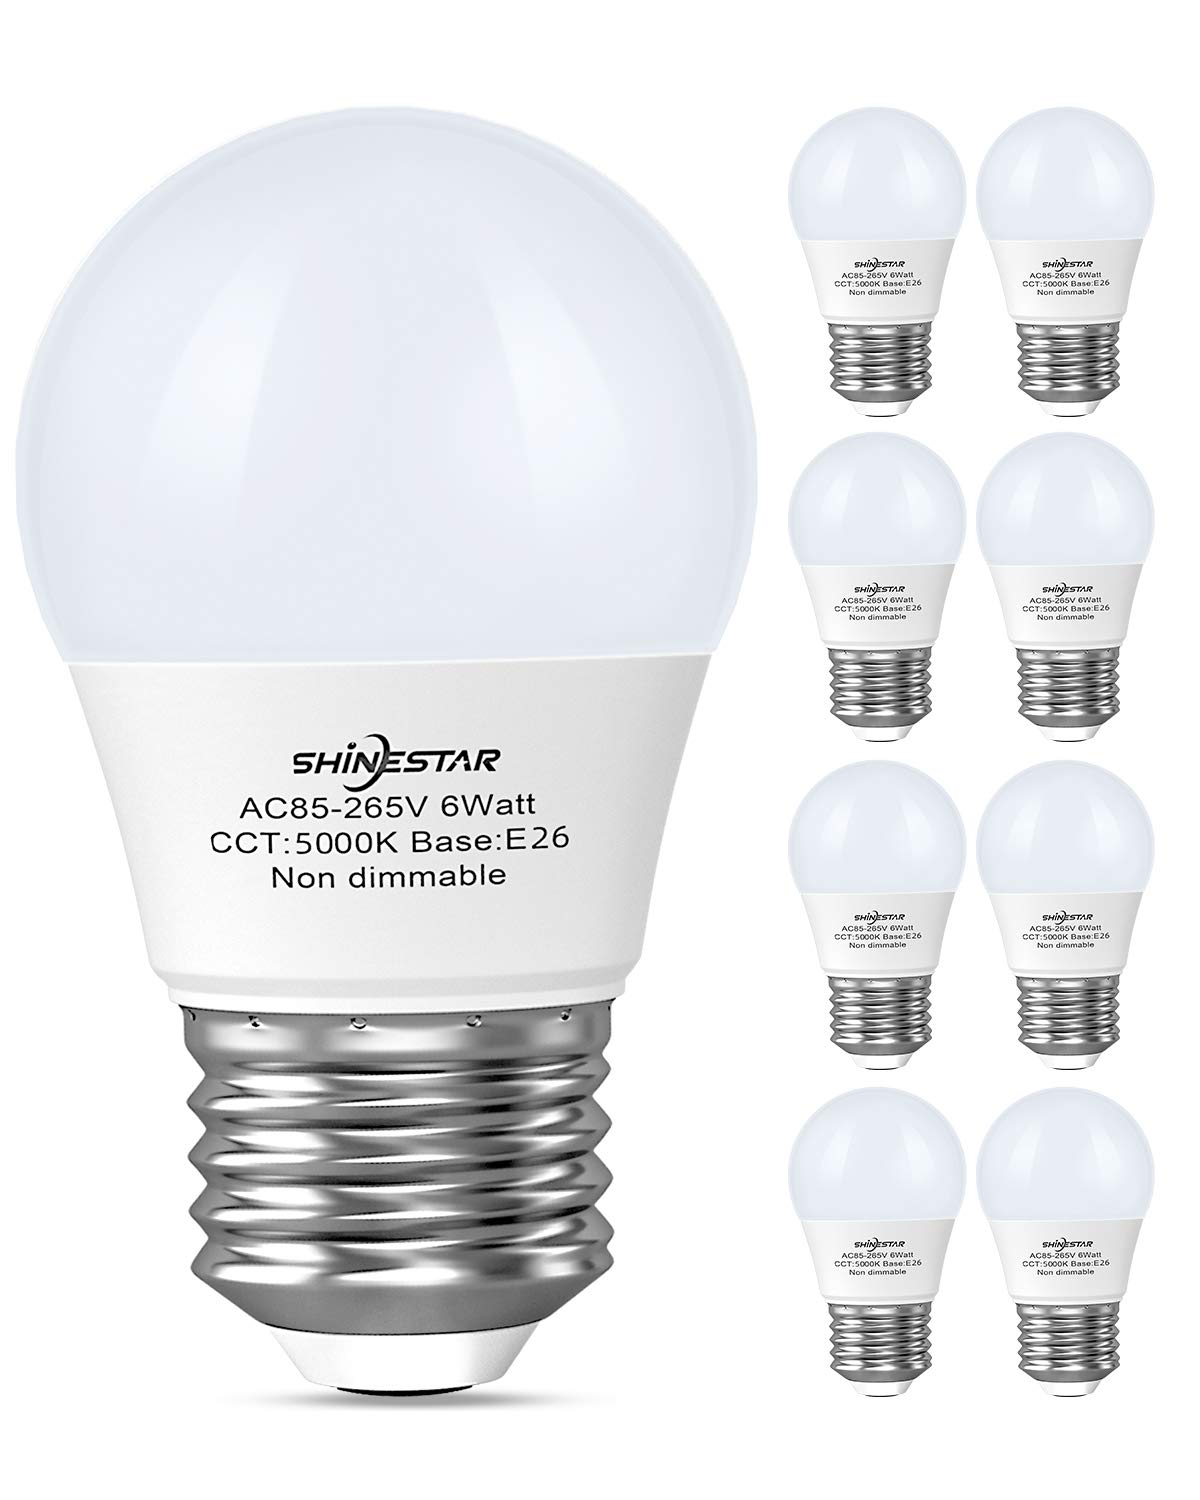 8-Pack A15 LED Bulbs, 60 Watt Equivalent E26 Light Bulb, 5000K Daylight LED Appliance Bulb Refrigerator Bulbs, G14 Ceiling Fan Light Bulbs, Non-dimmable